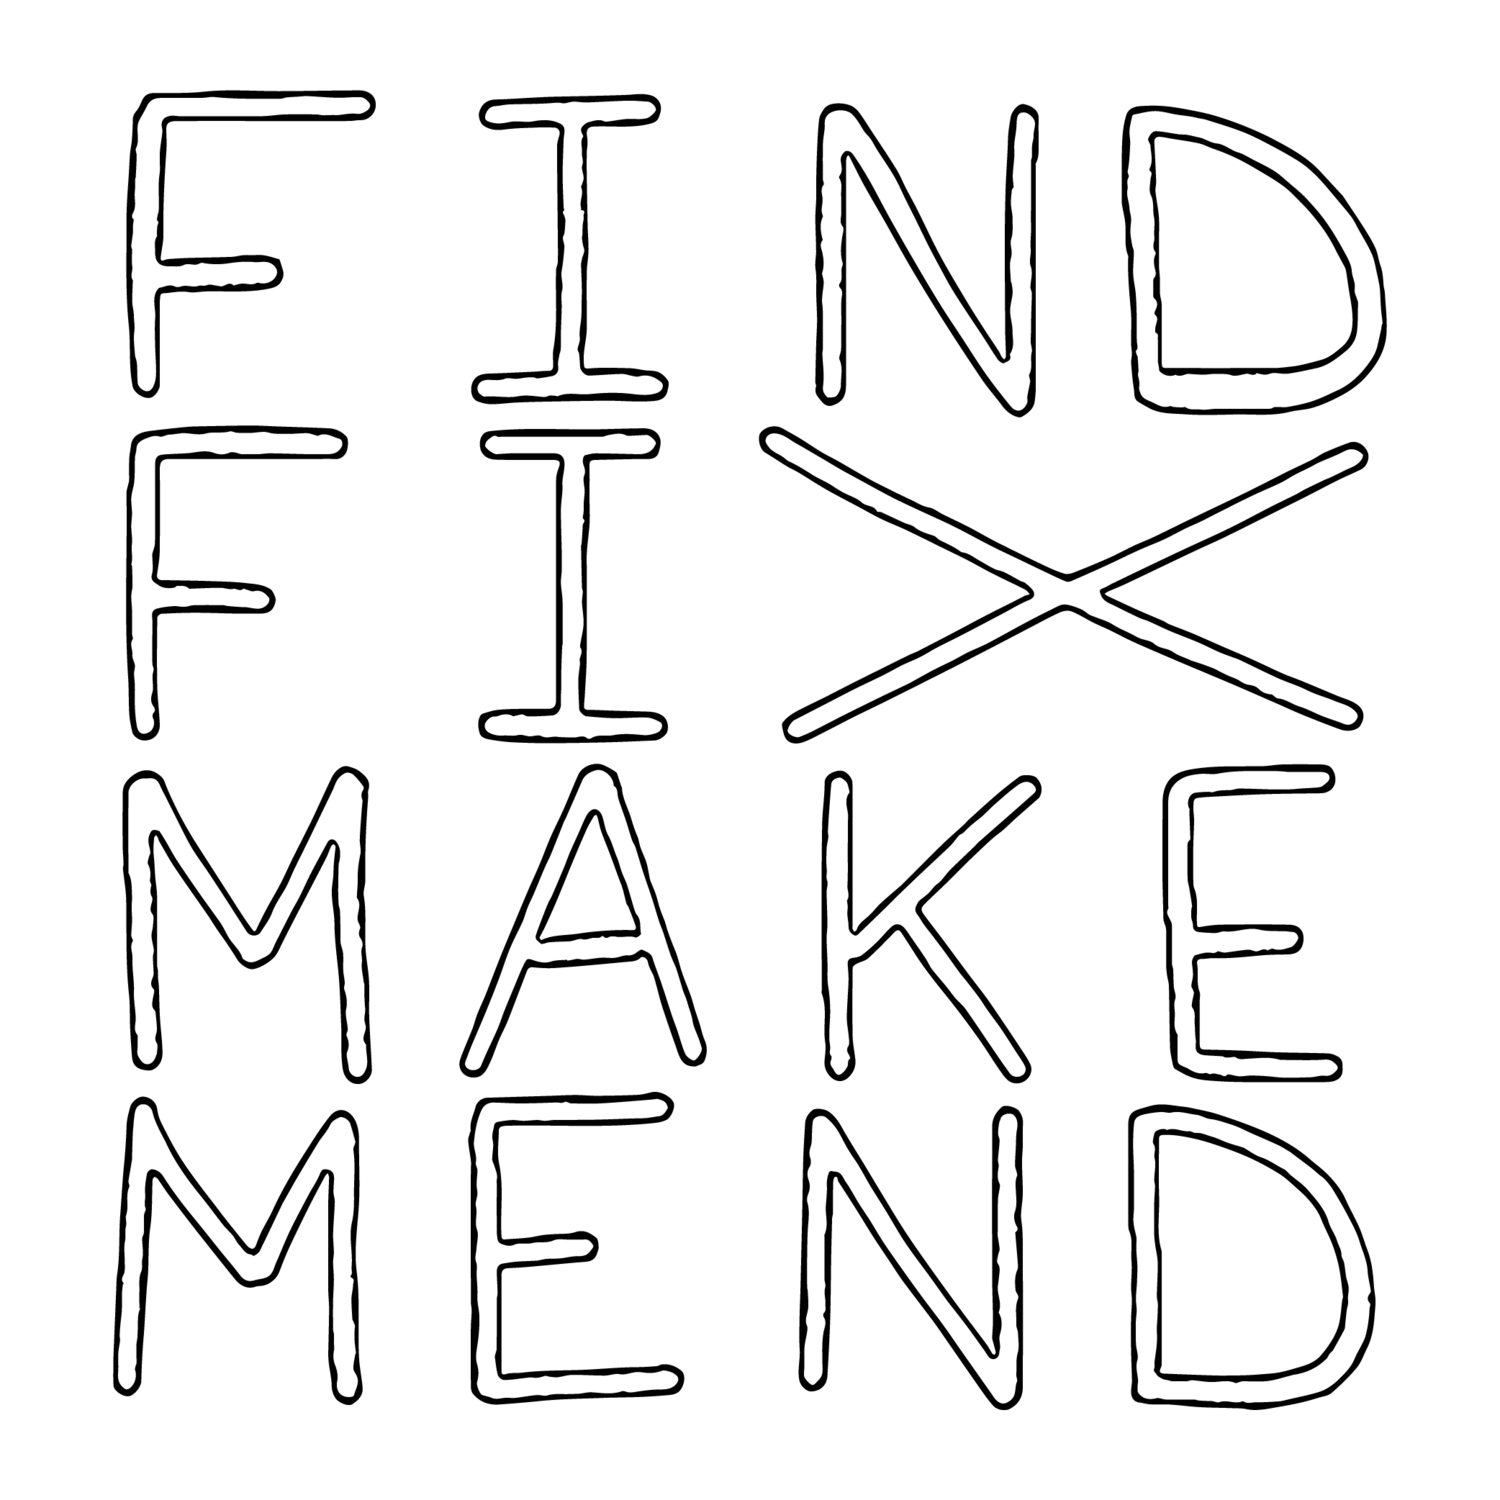 Find/Fix/Make/Mend